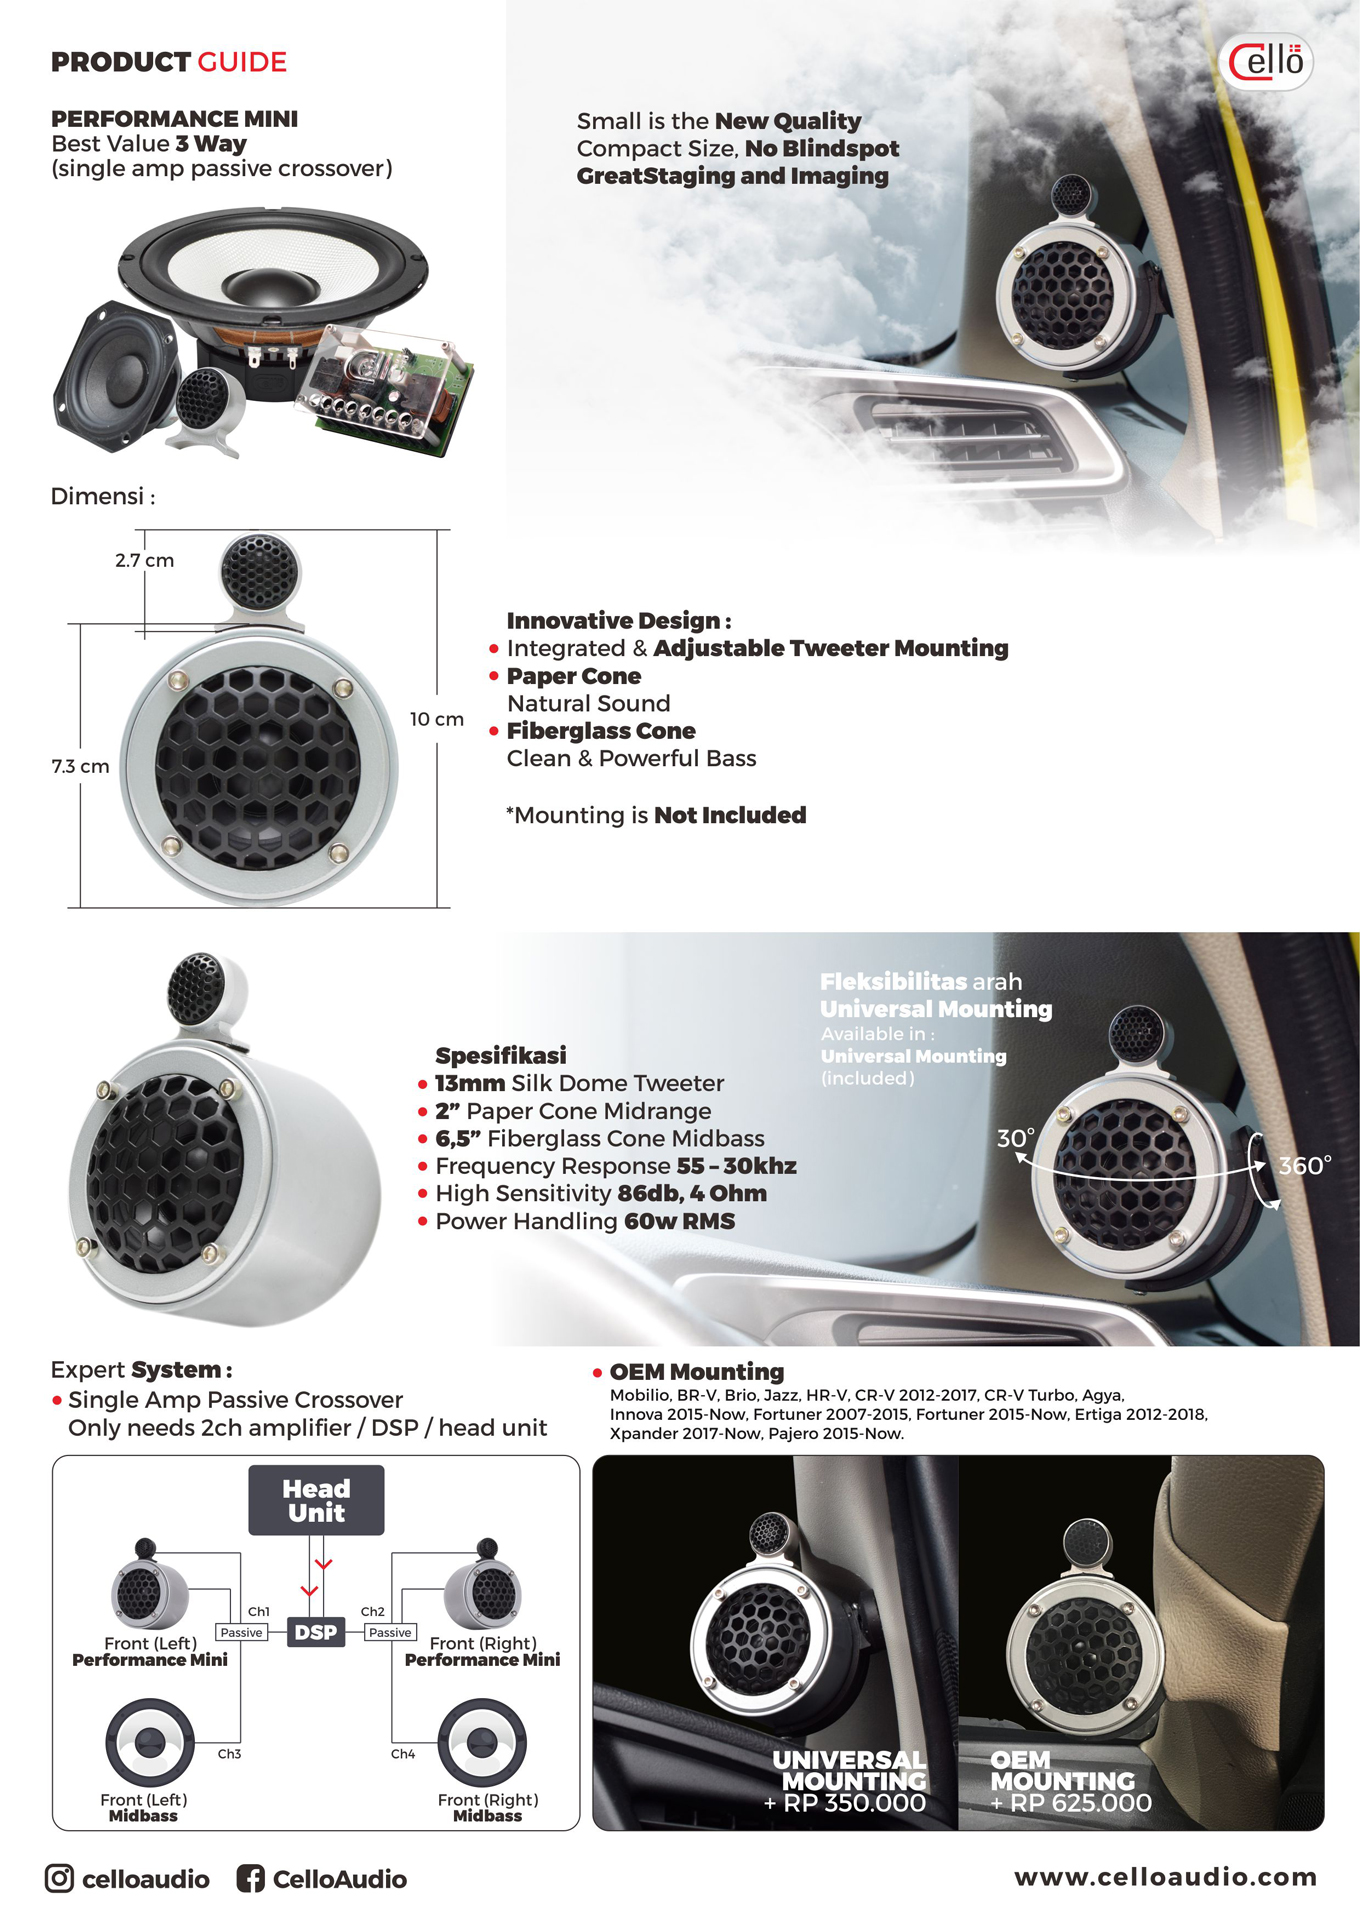 Product-Guide-Performance-MINI-2020-2021